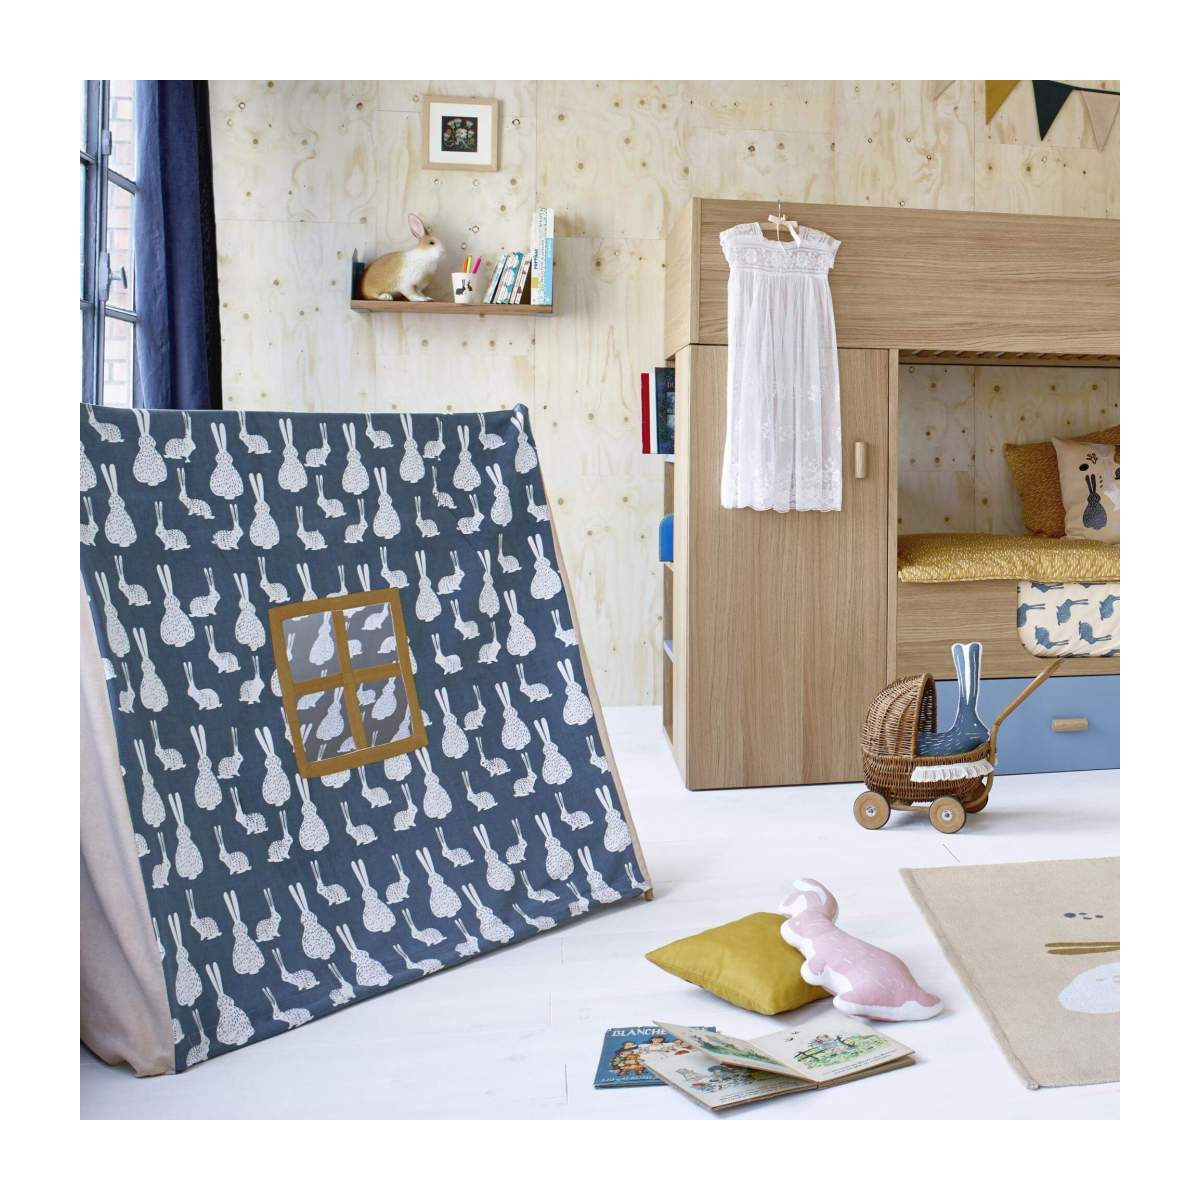 Tent made of cotton, bunny pattern n°8